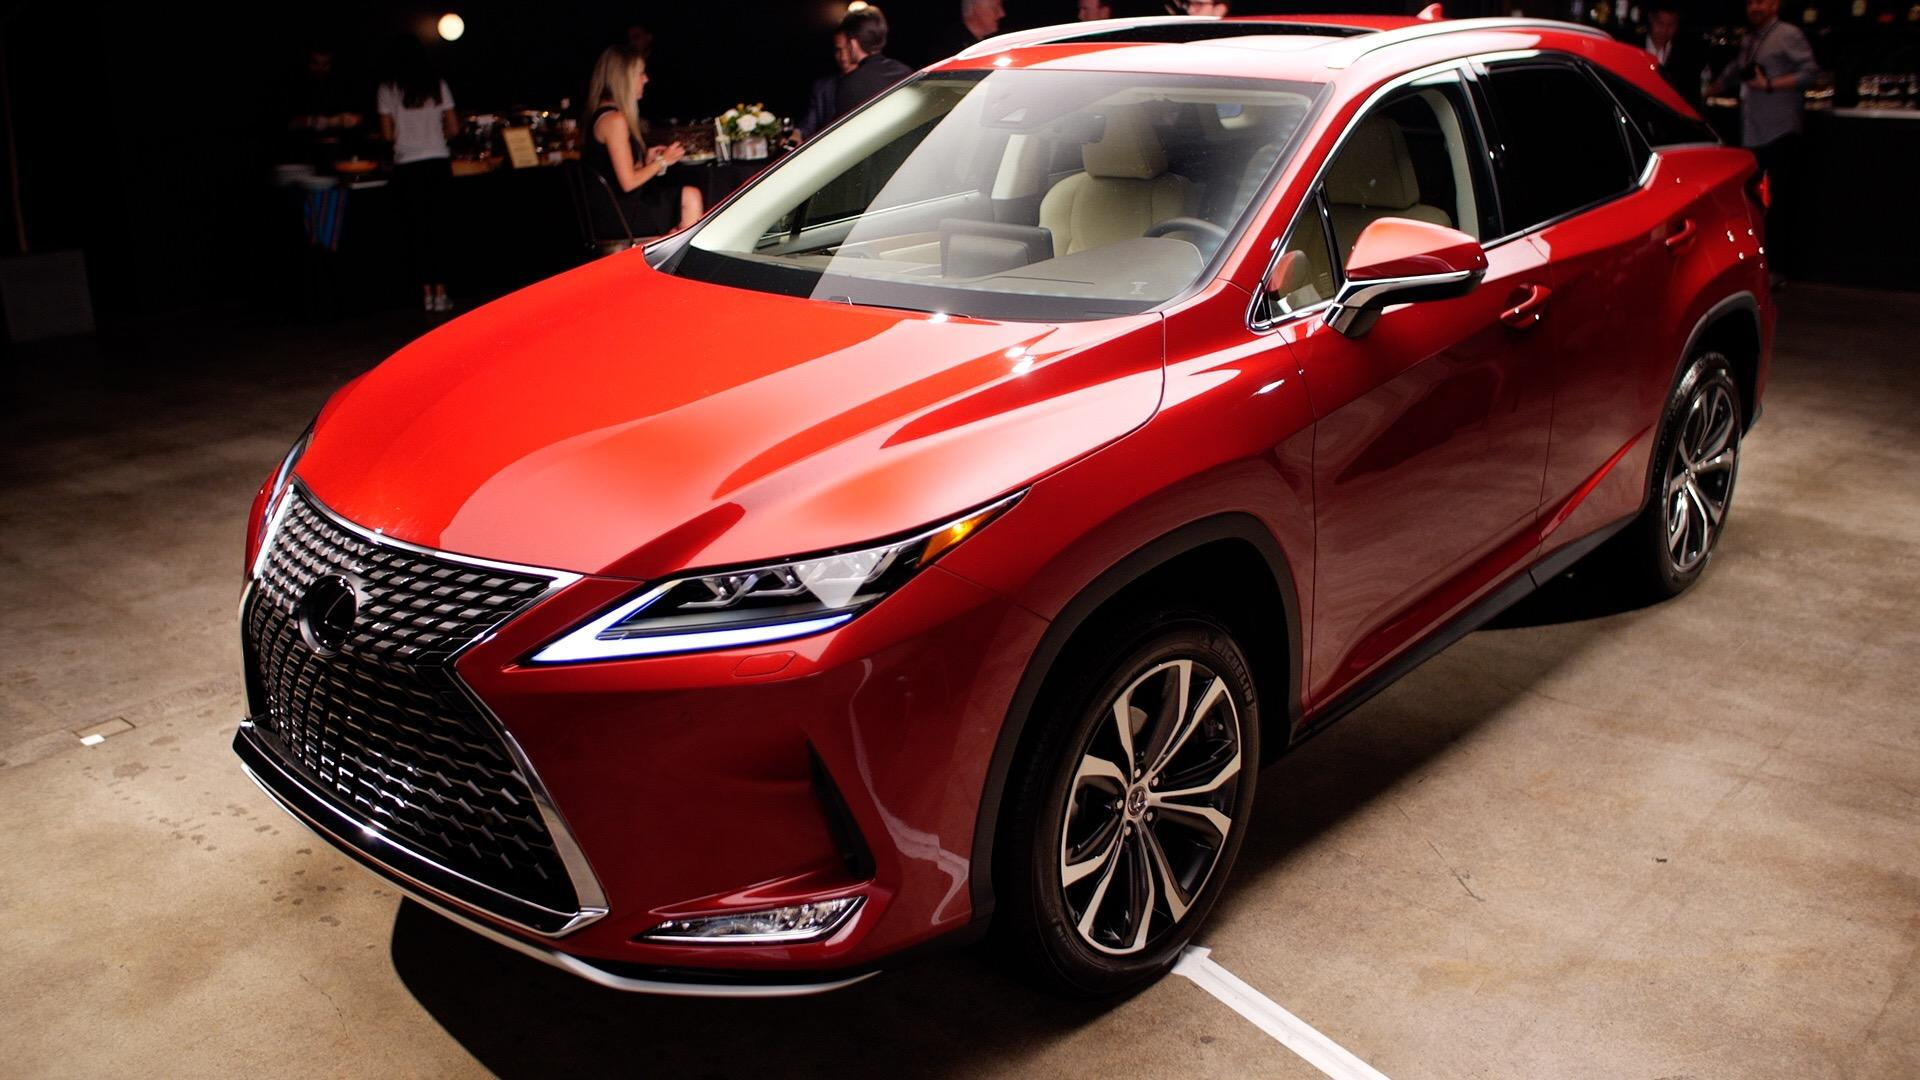 Video: 2020 Lexus RX ups its tech game for a new decade